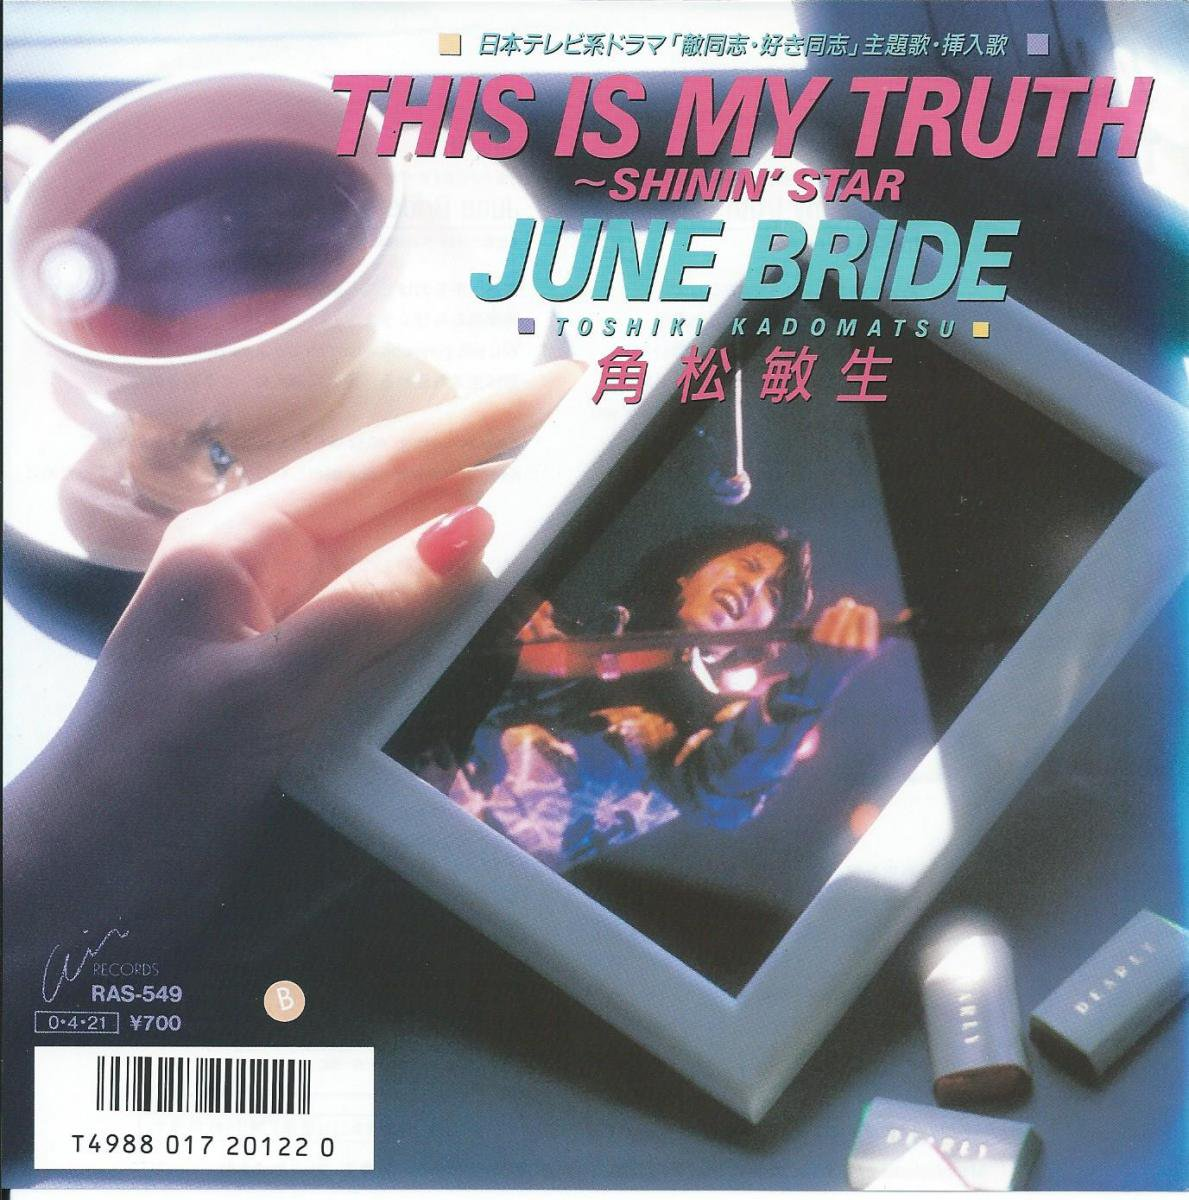 角松敏生 TOSHIKI KADOMATSU / THIS IS MY TRUTH 〜SHININ' STAR〜 / JUNE BRIDE (7